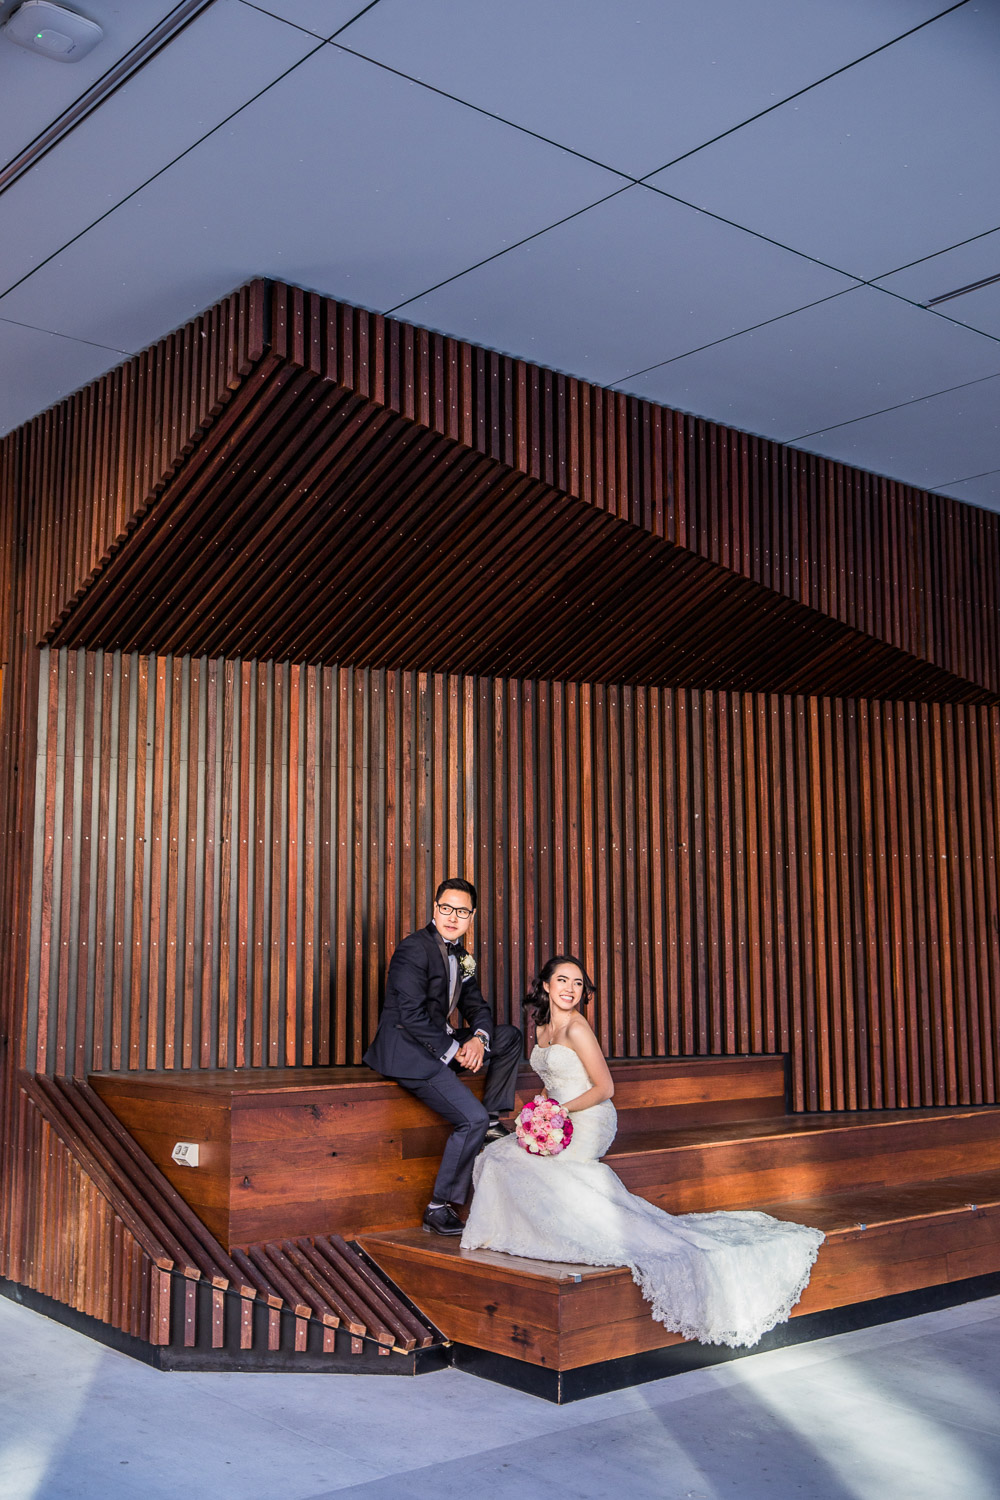 170819 Puremotion Wedding Photography Brisbane Golden Lane LinhMartin-0075